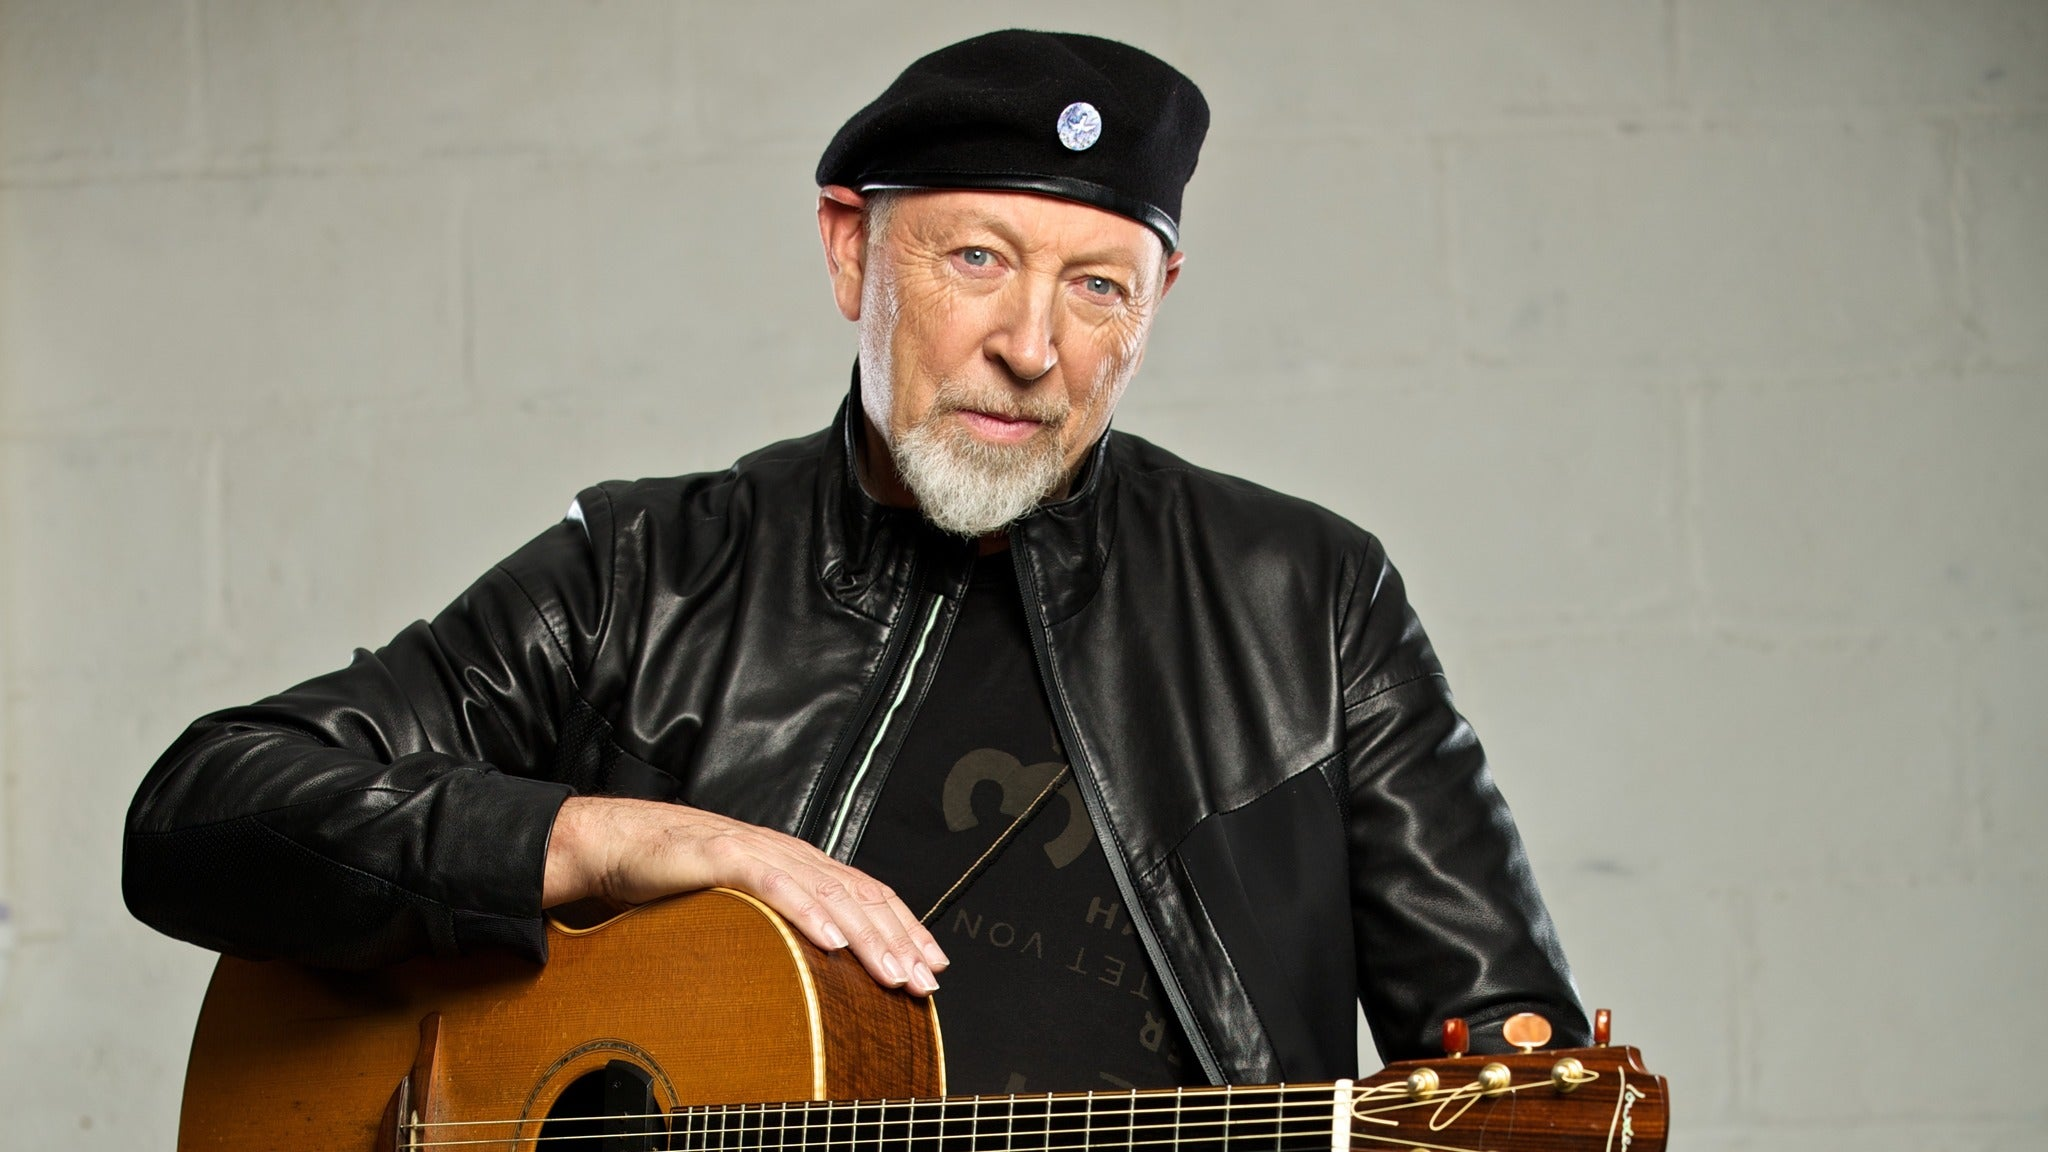 Richard Thompson at Matthews Theatre - Princeton, NJ 08540